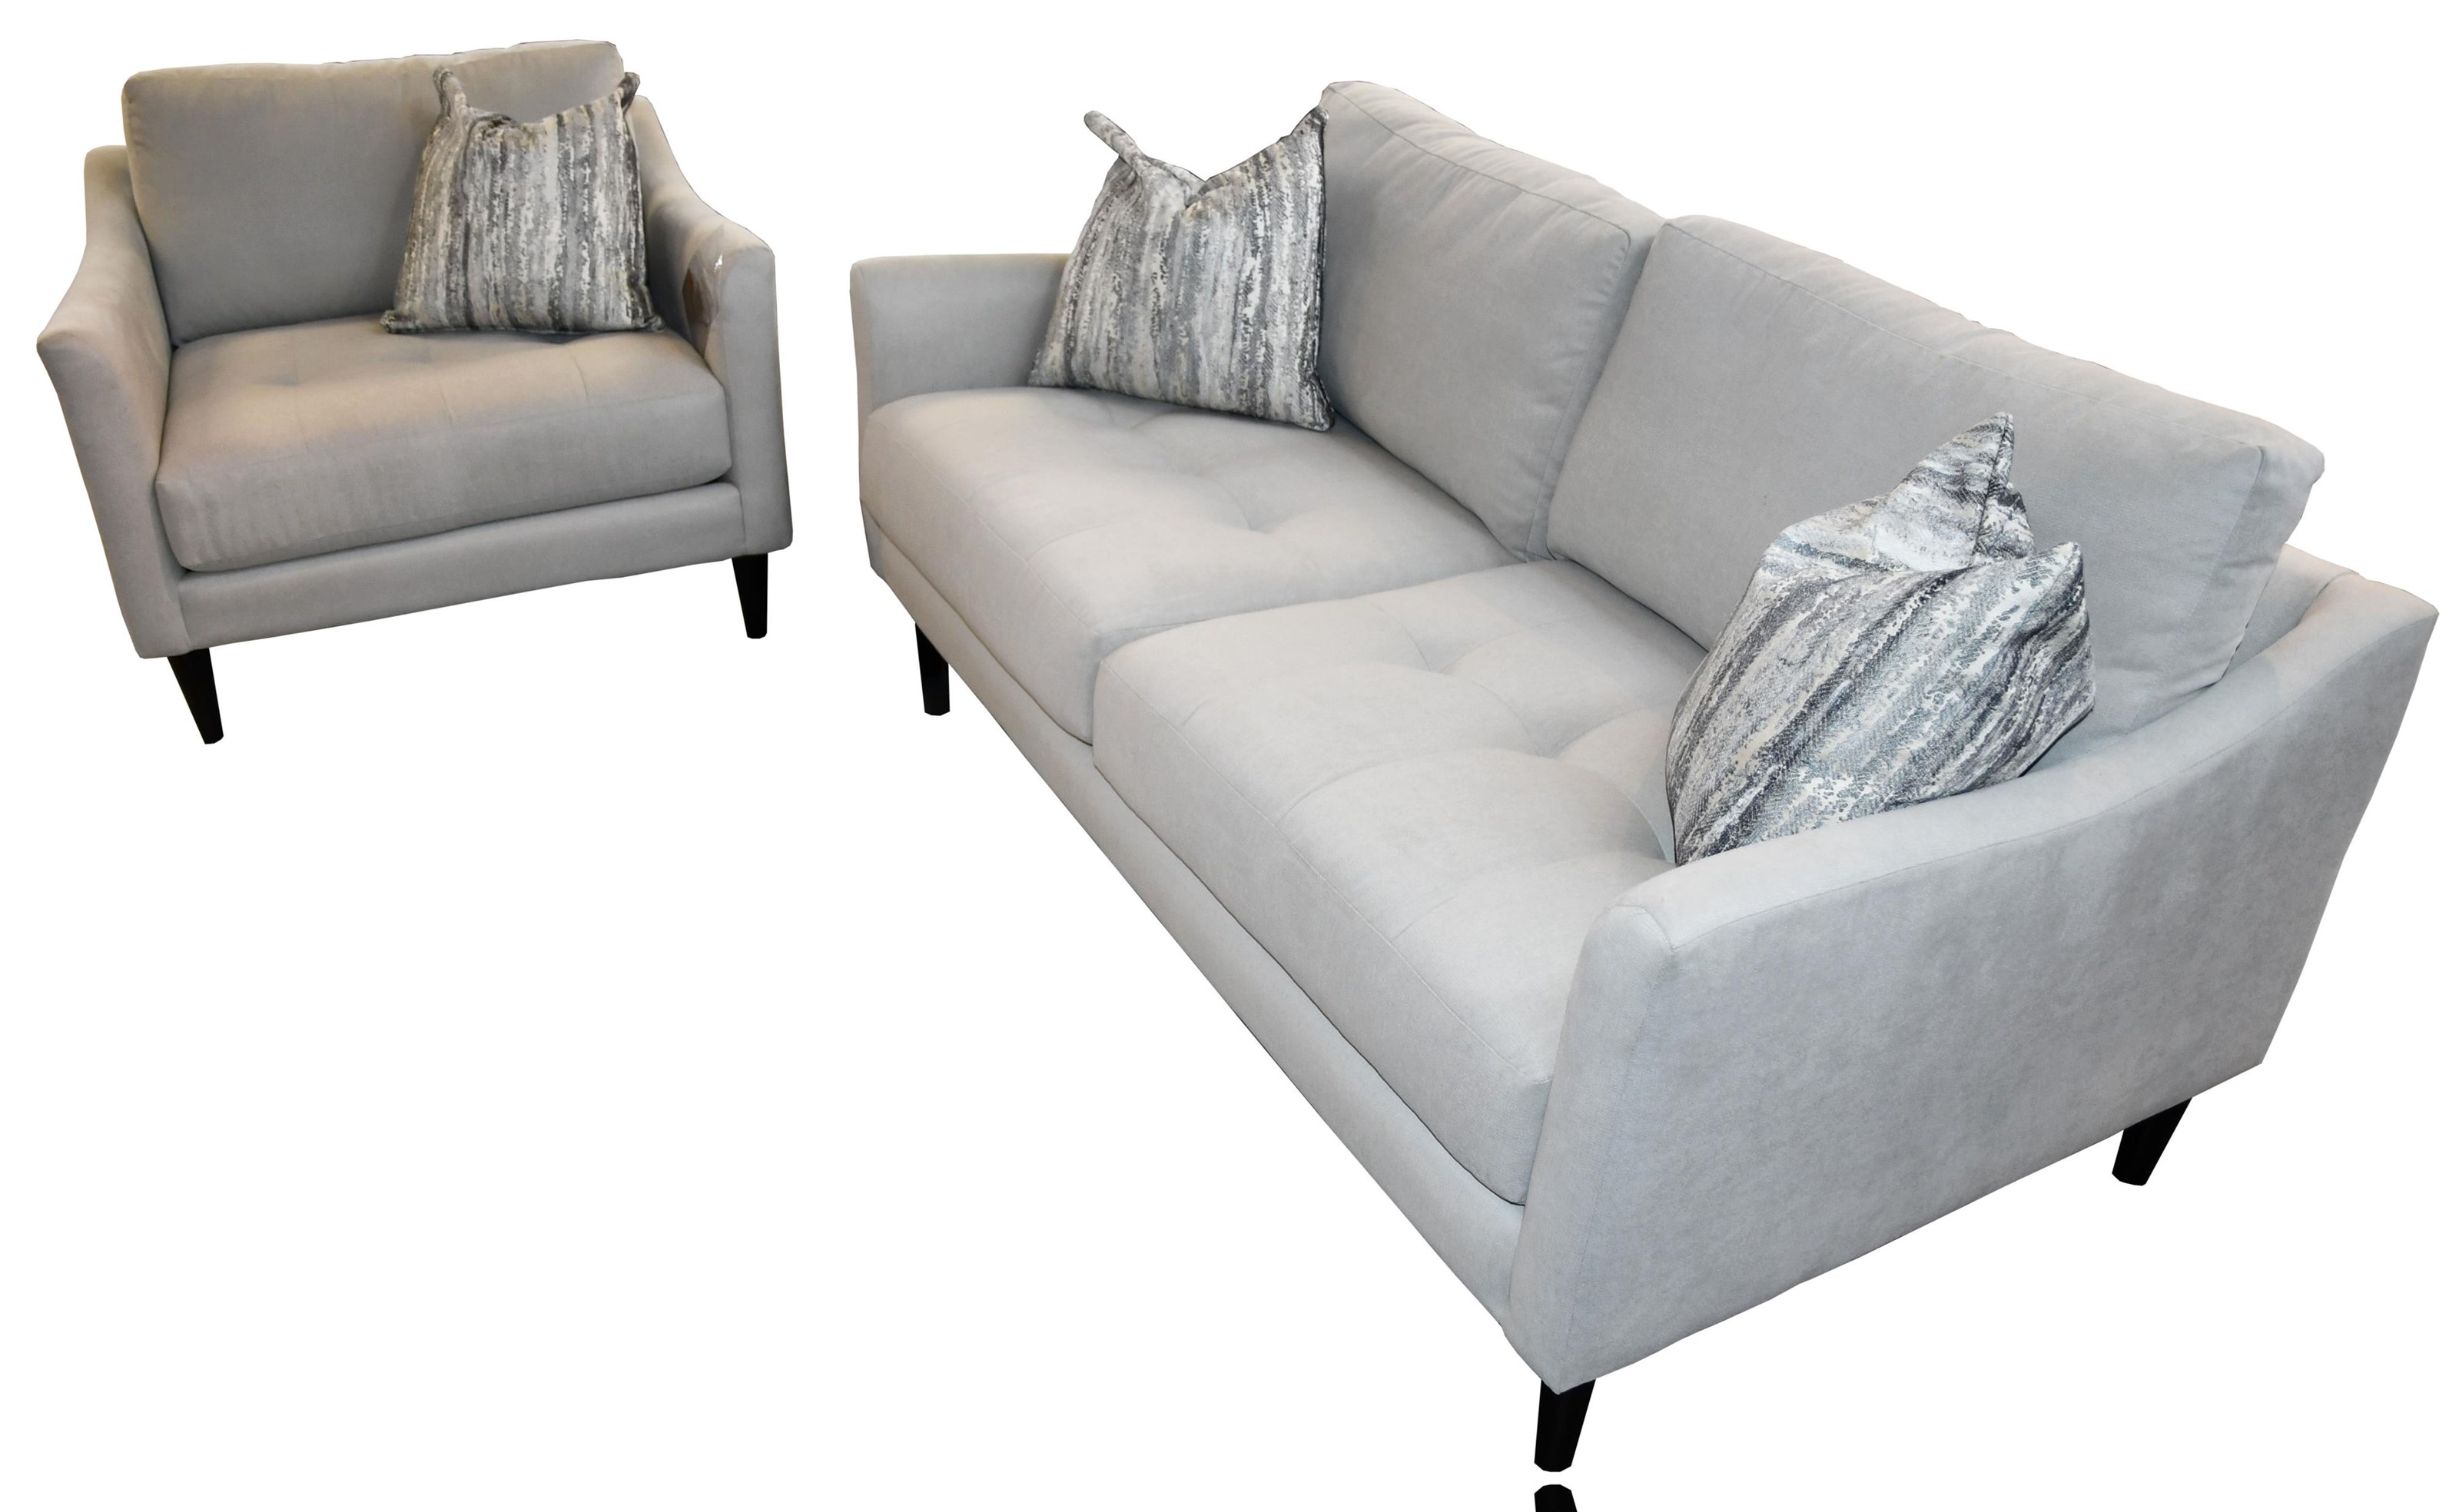 Bliss 1 Sofa & Chair by Taelor Designs at Bennett's Furniture and Mattresses